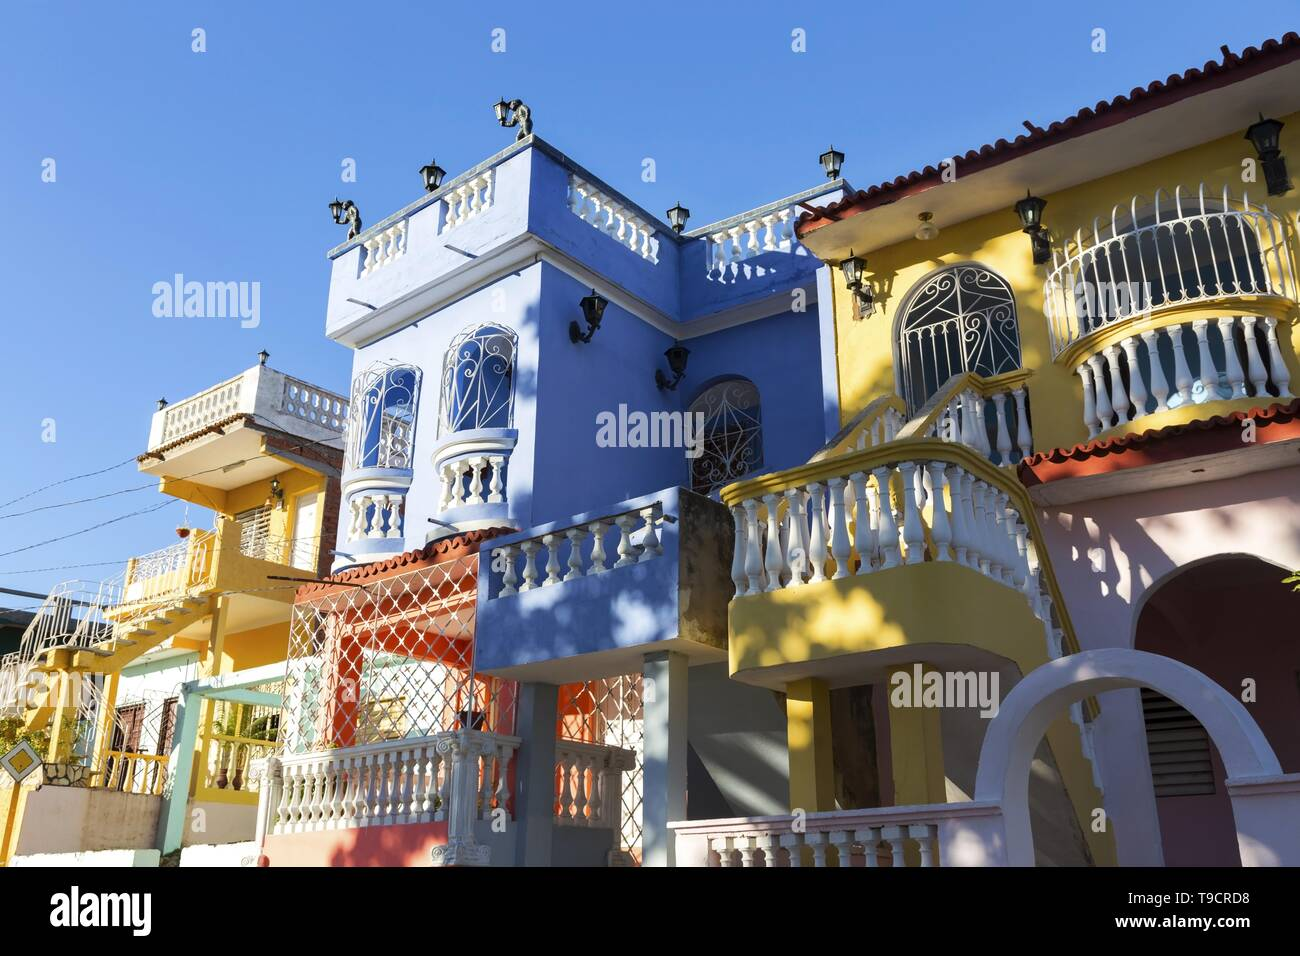 Colorful Residential Private House Buildings in Trinidad Cuba. Typically owned by wealthy Cubans and rented to Tourists Stock Photo